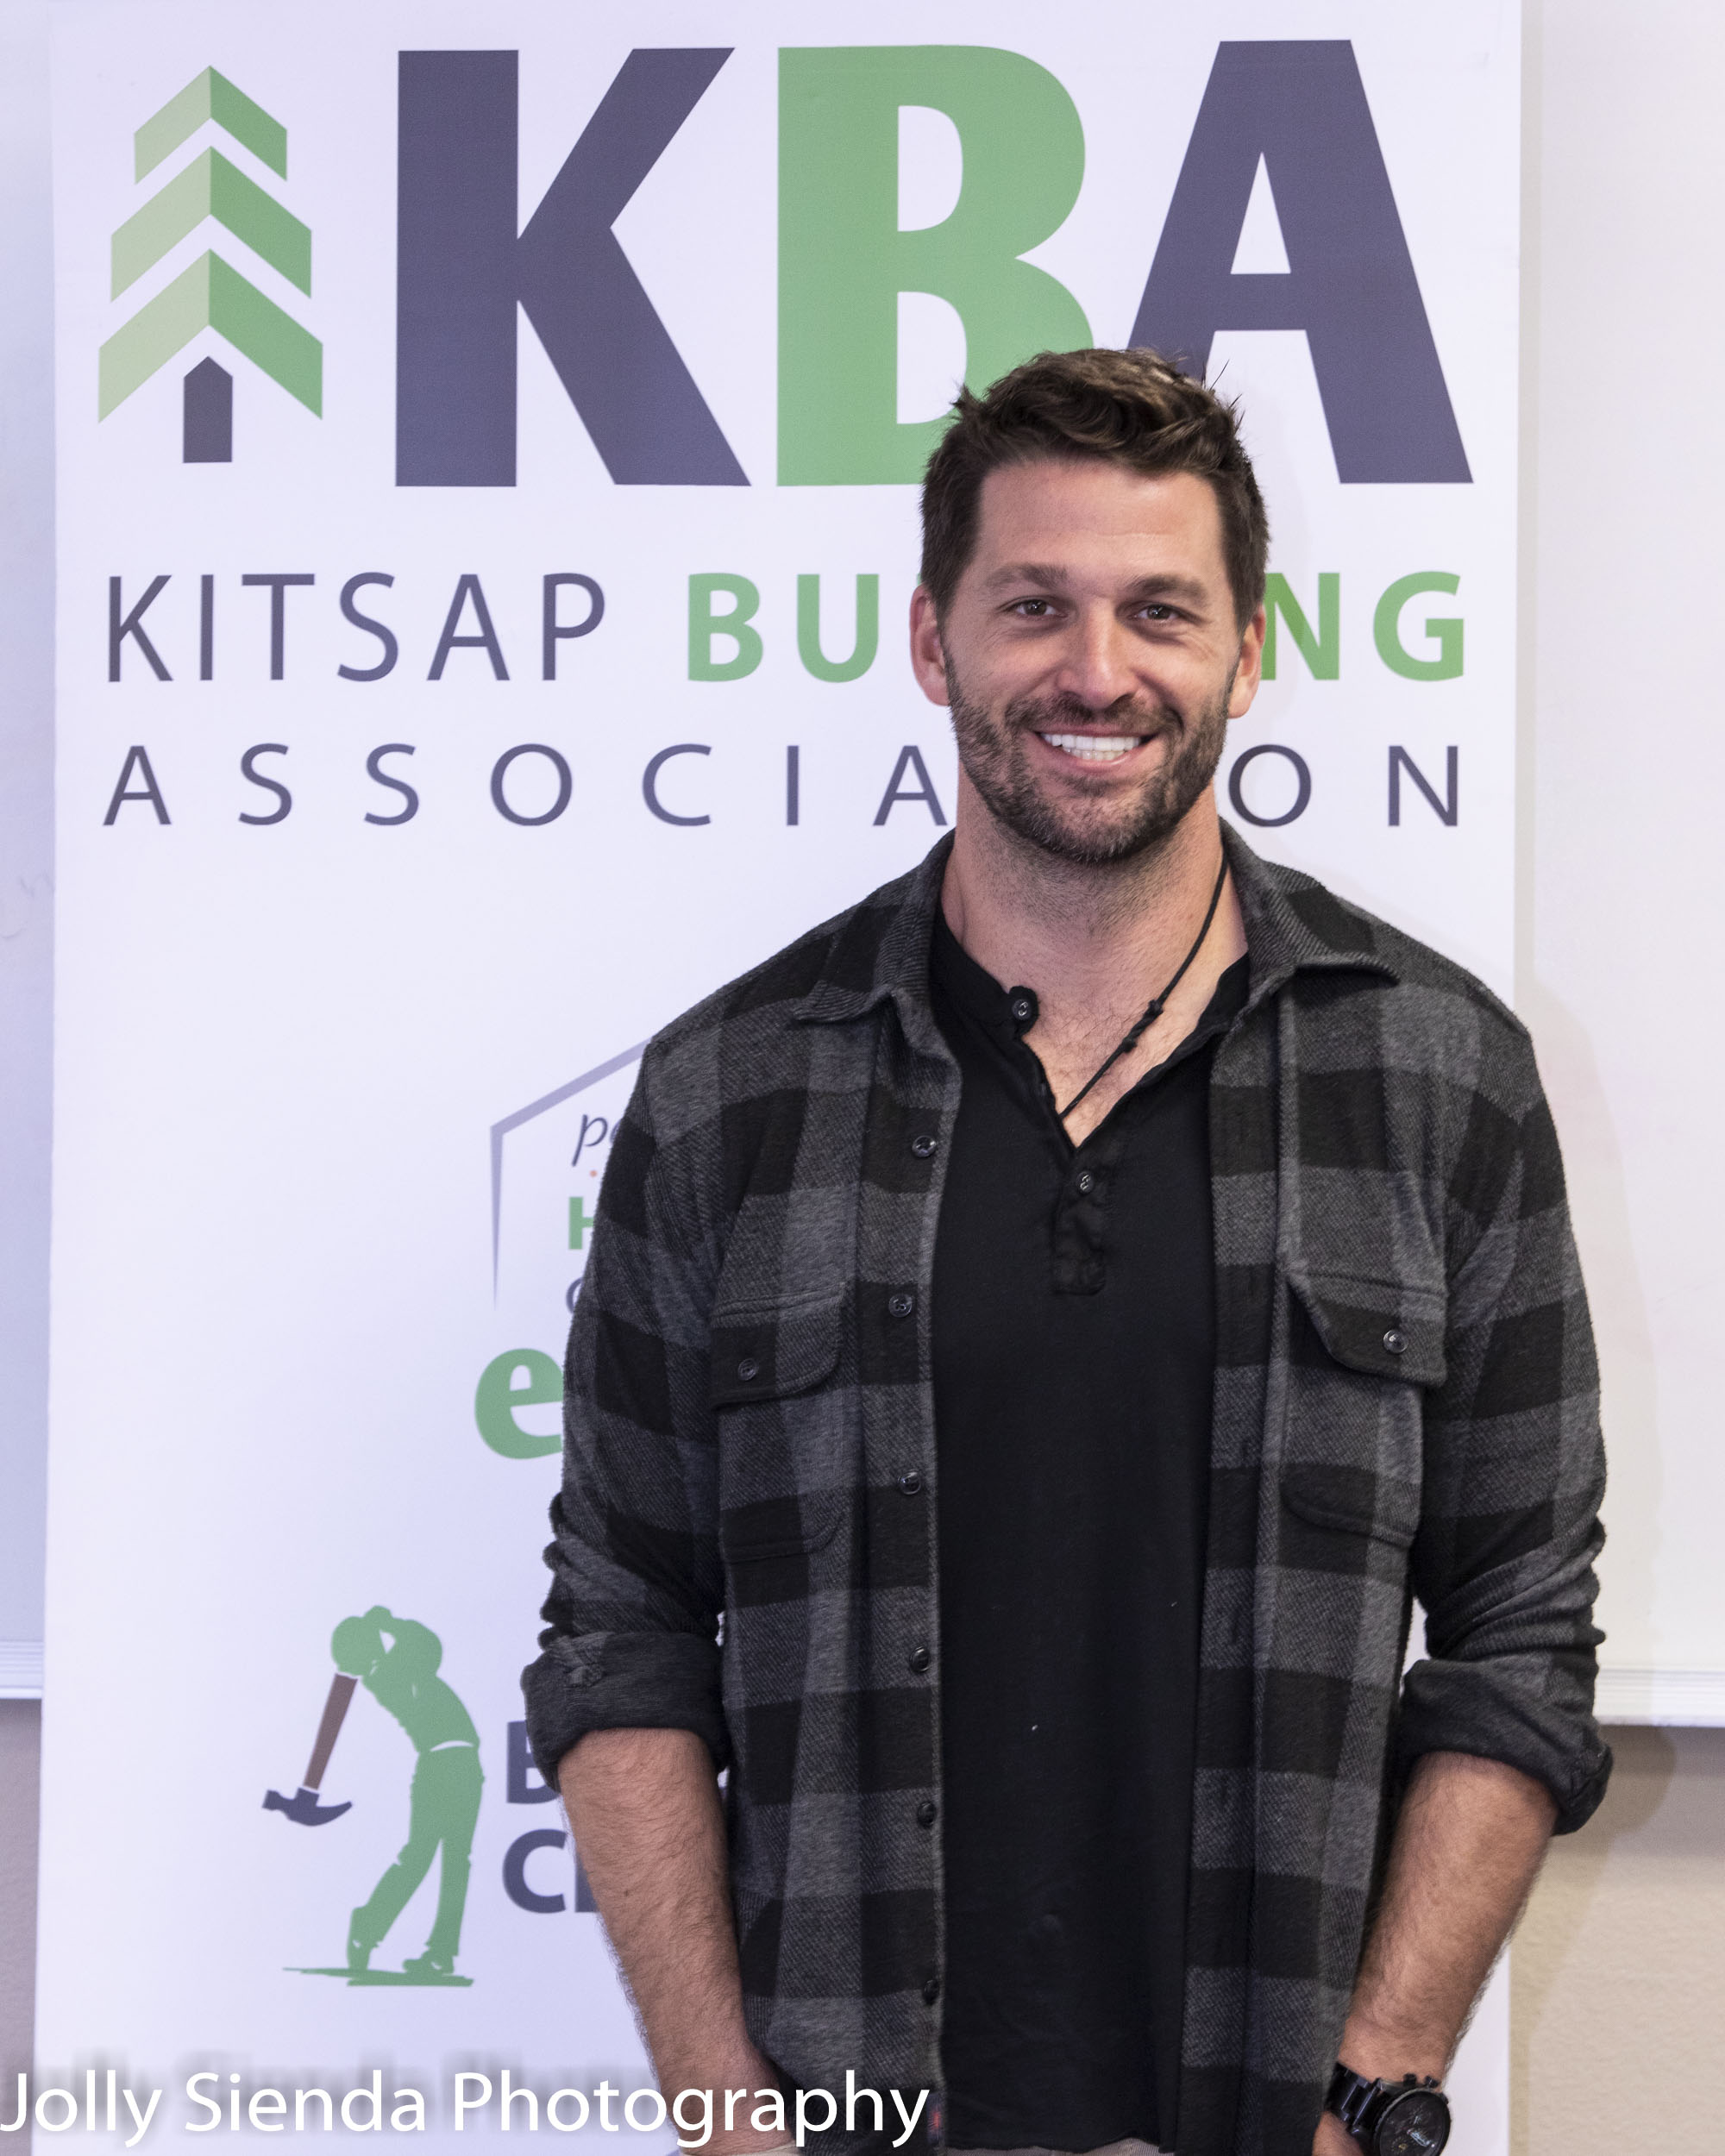 Brett Tutor, TLC's Trading Spaces, Peninsula Home & Garden Show